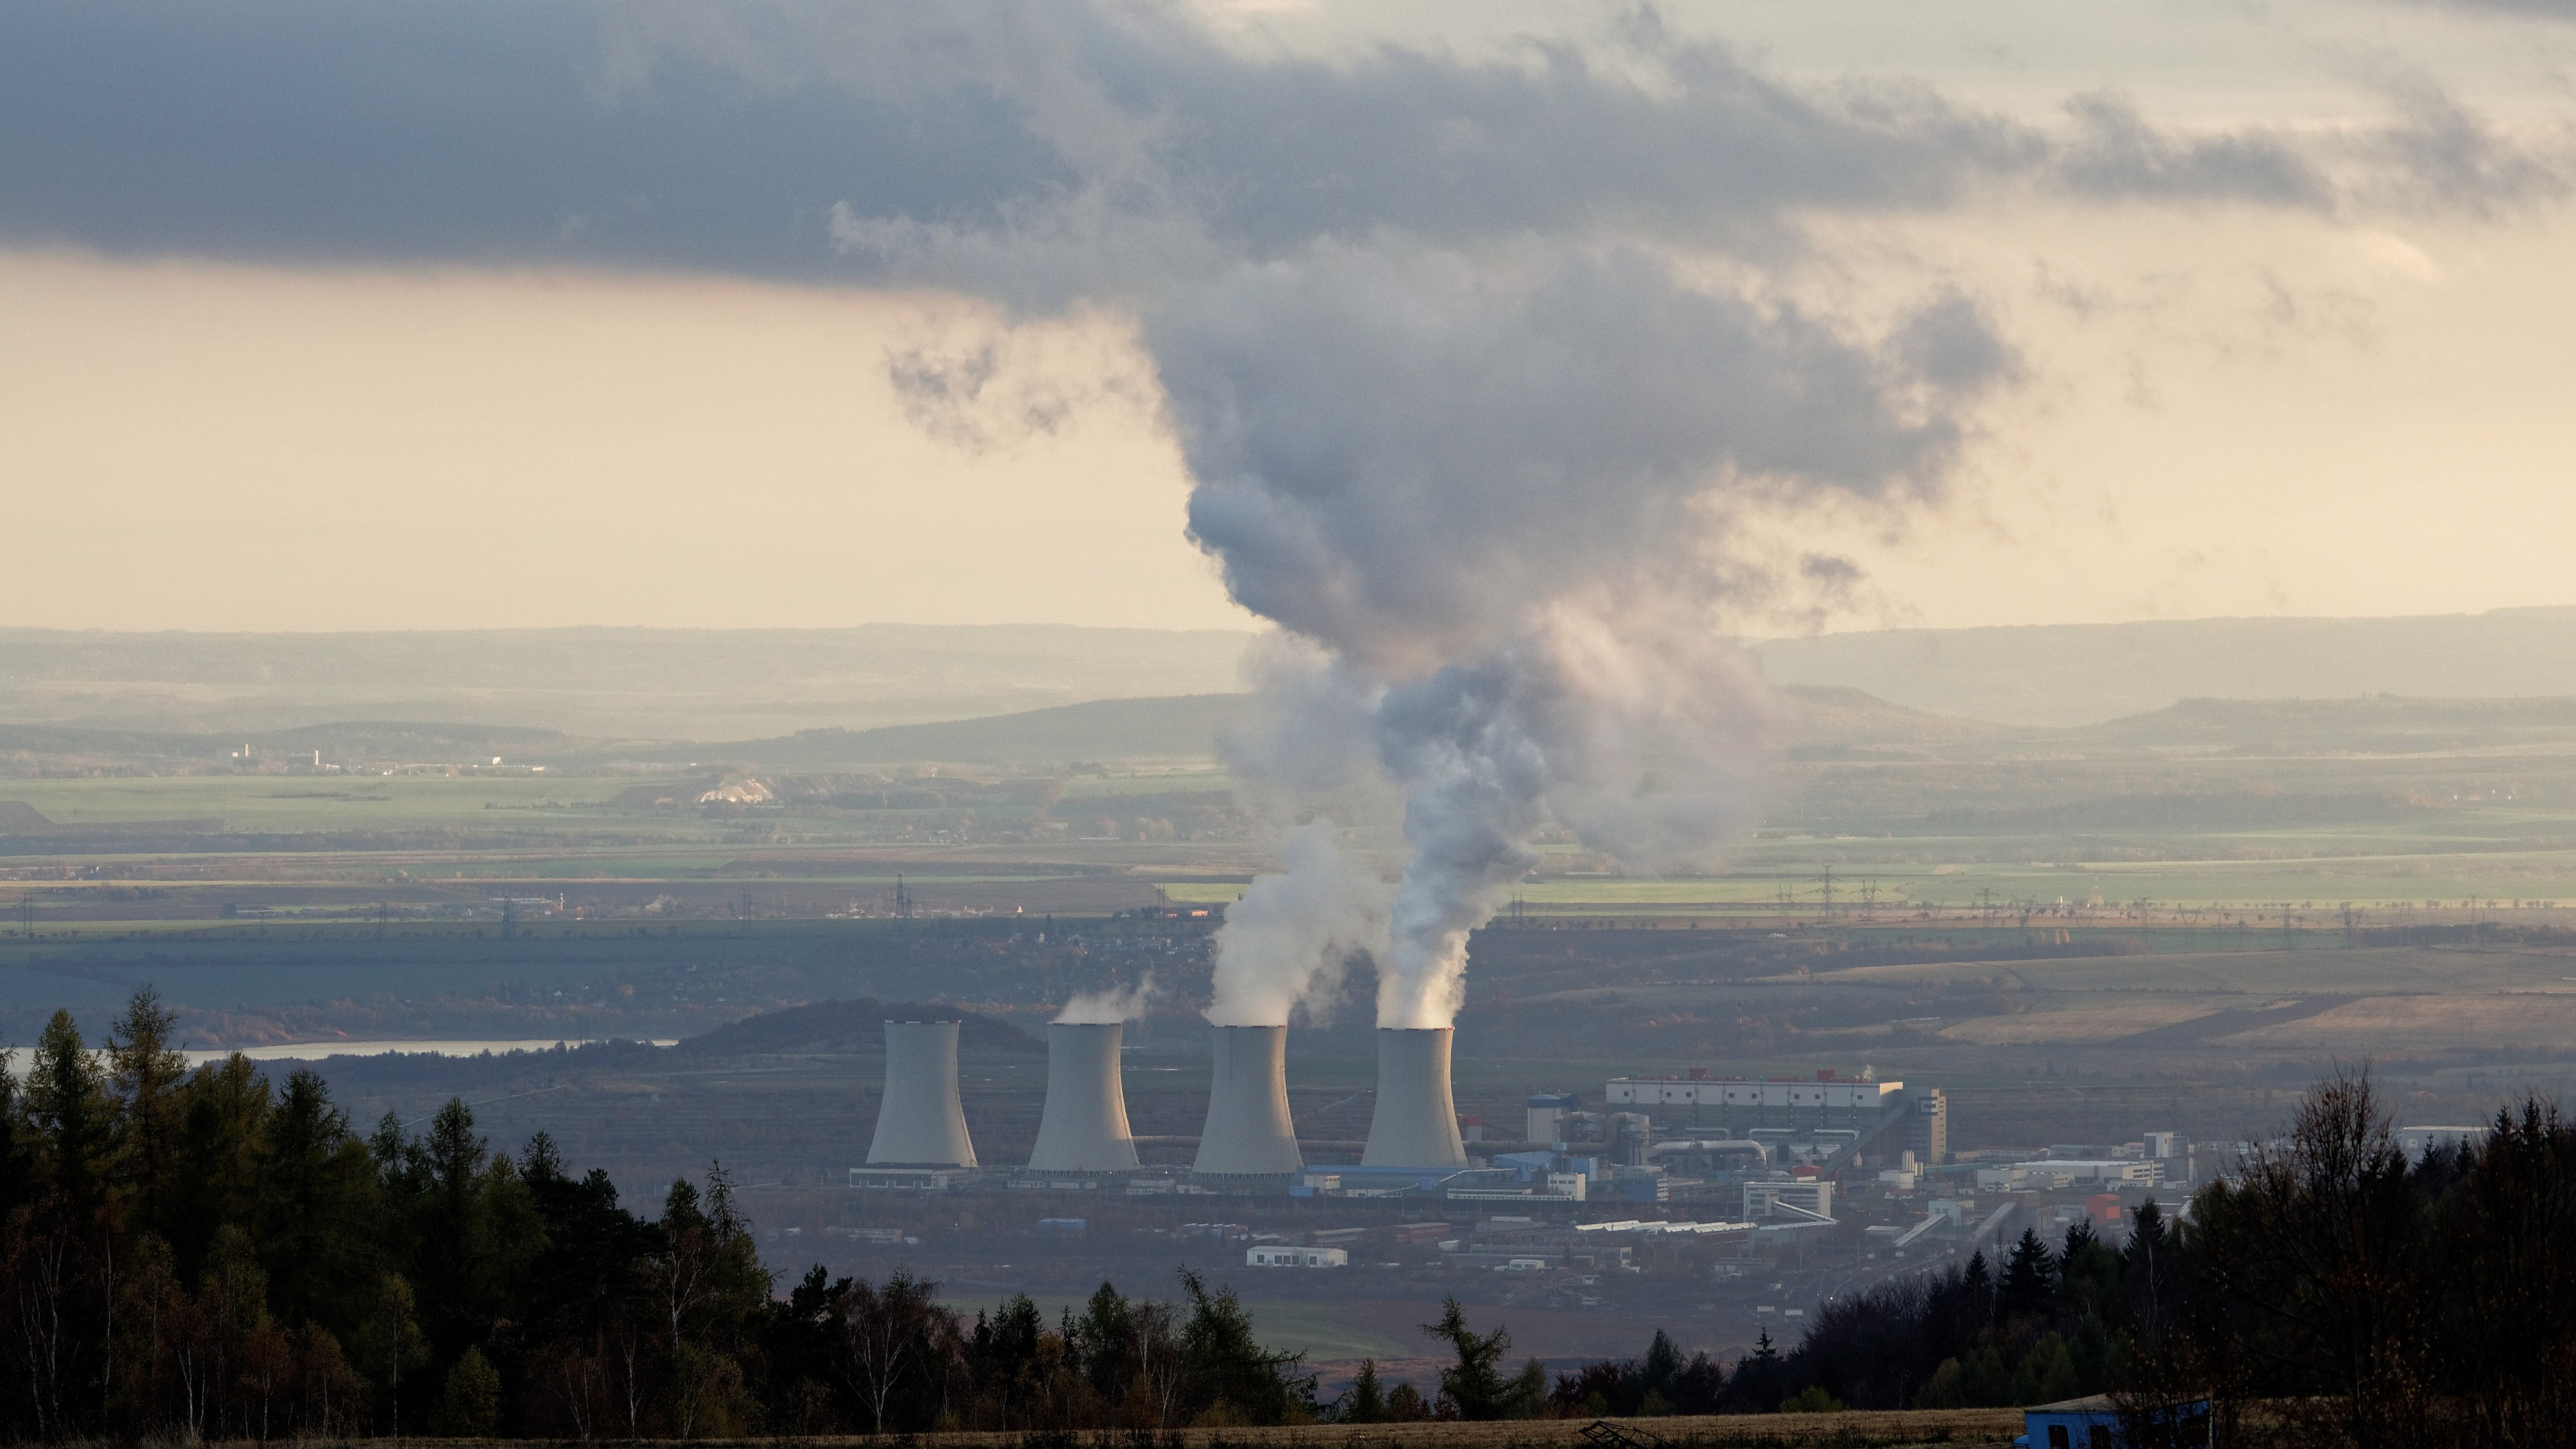 coal power plant Tusmice in northwest of Czech Republic. Photo: Tilo Arnhold/TROPOS